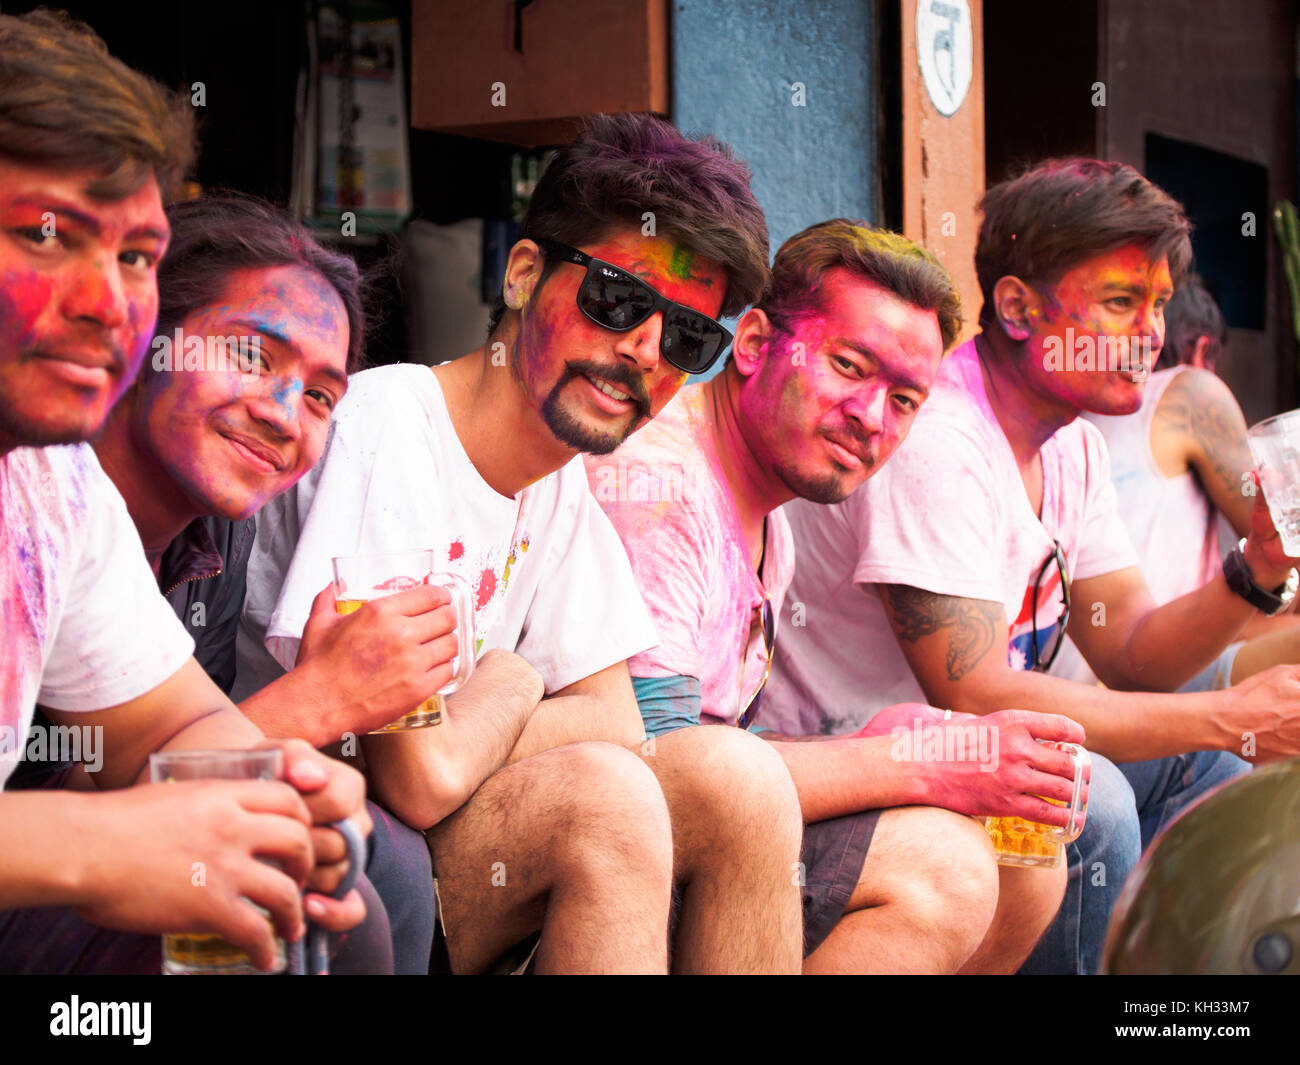 Nepali youths covered with coloured powder after celebrating the Hindu festival Holi in Pokhara, Nepal - Stock Image